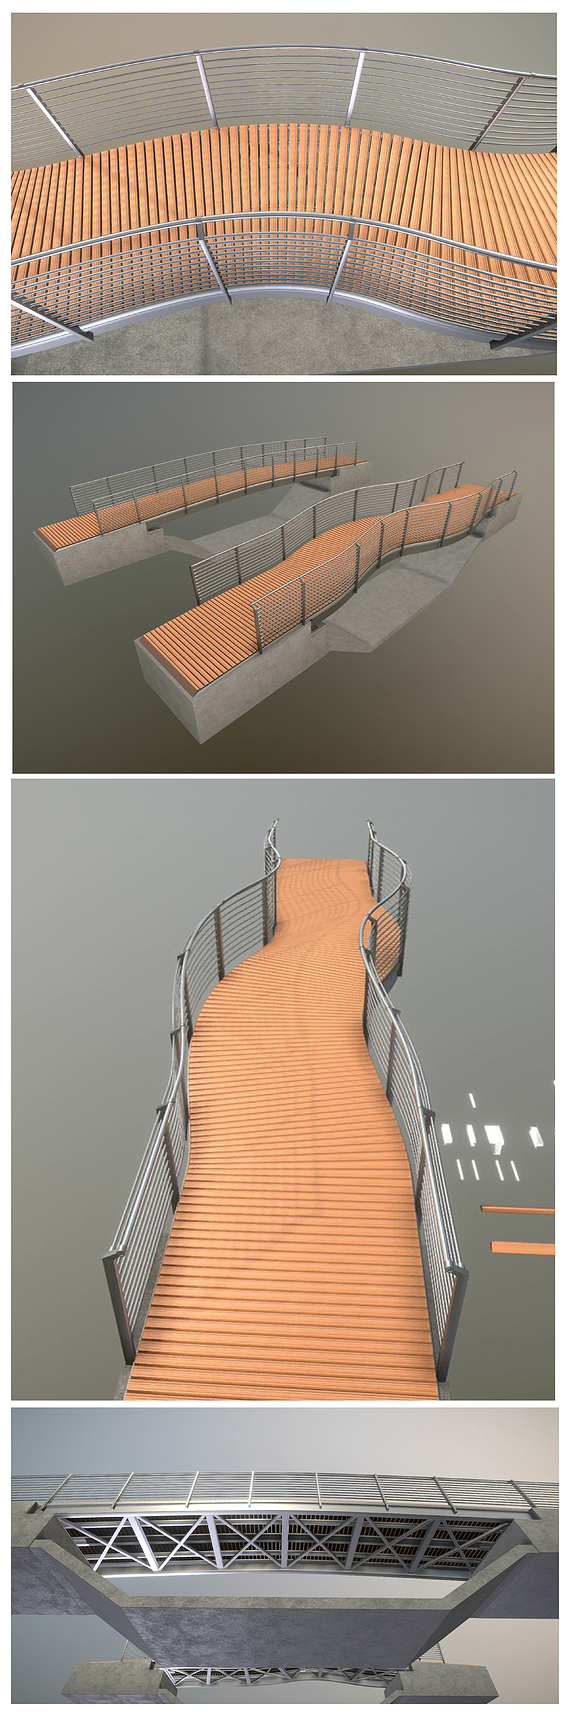 Cycle Bridge - Version 1